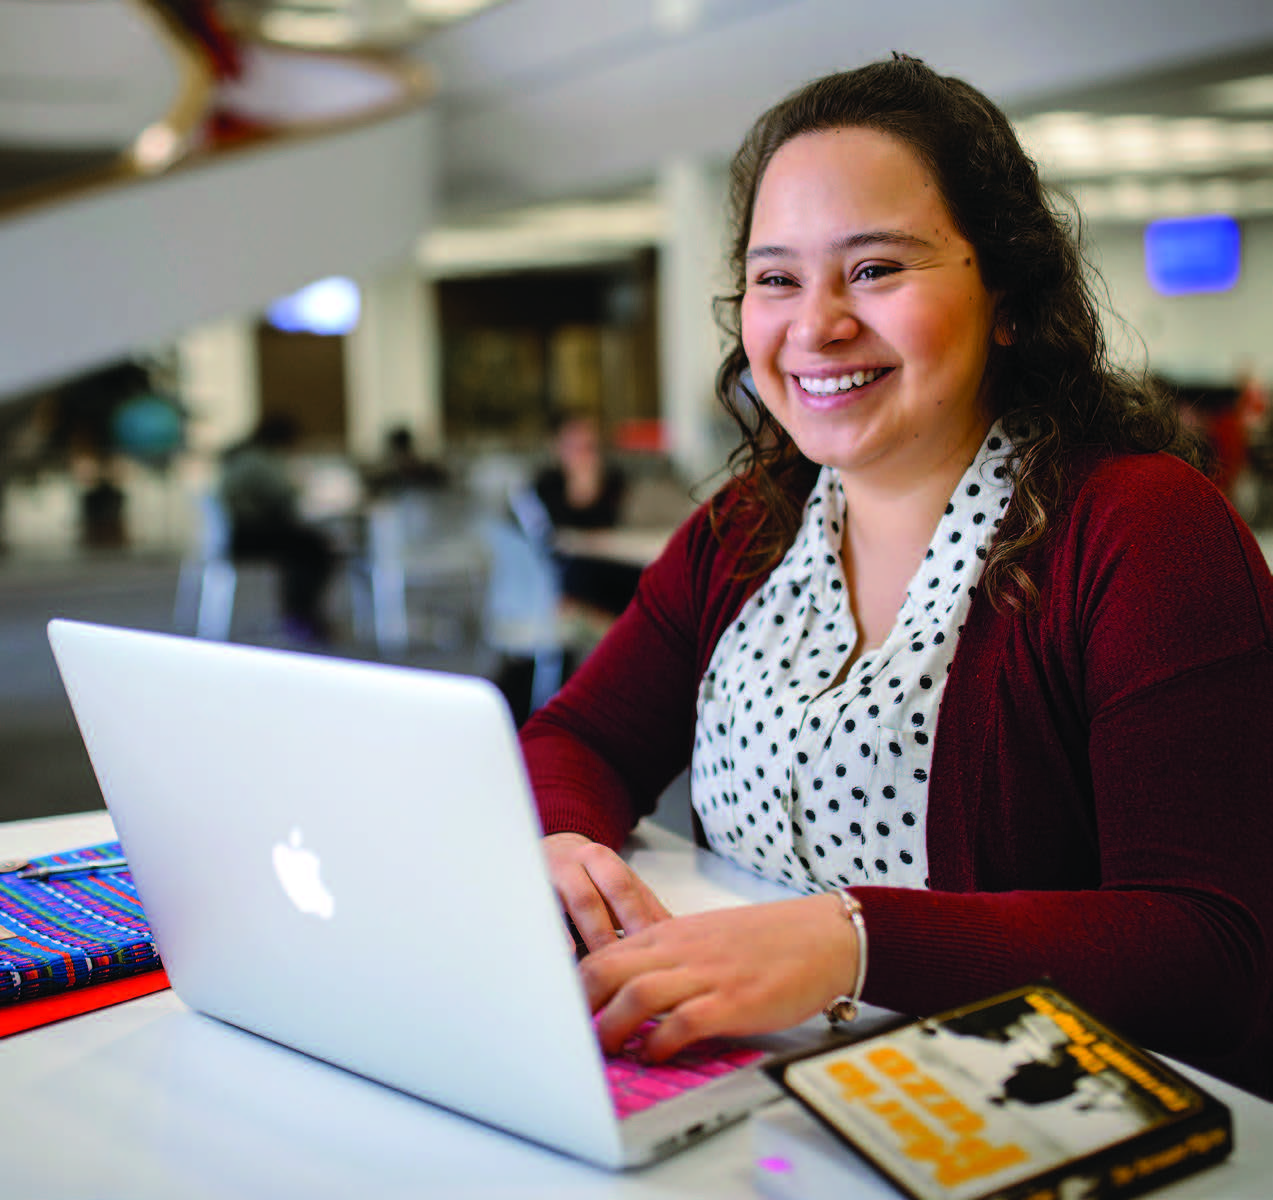 Biology major Karla Reyes Ortiz '17 studies in the Melville Library between classes and her internship with the student-run Health Outreach and Medical Education clinic.